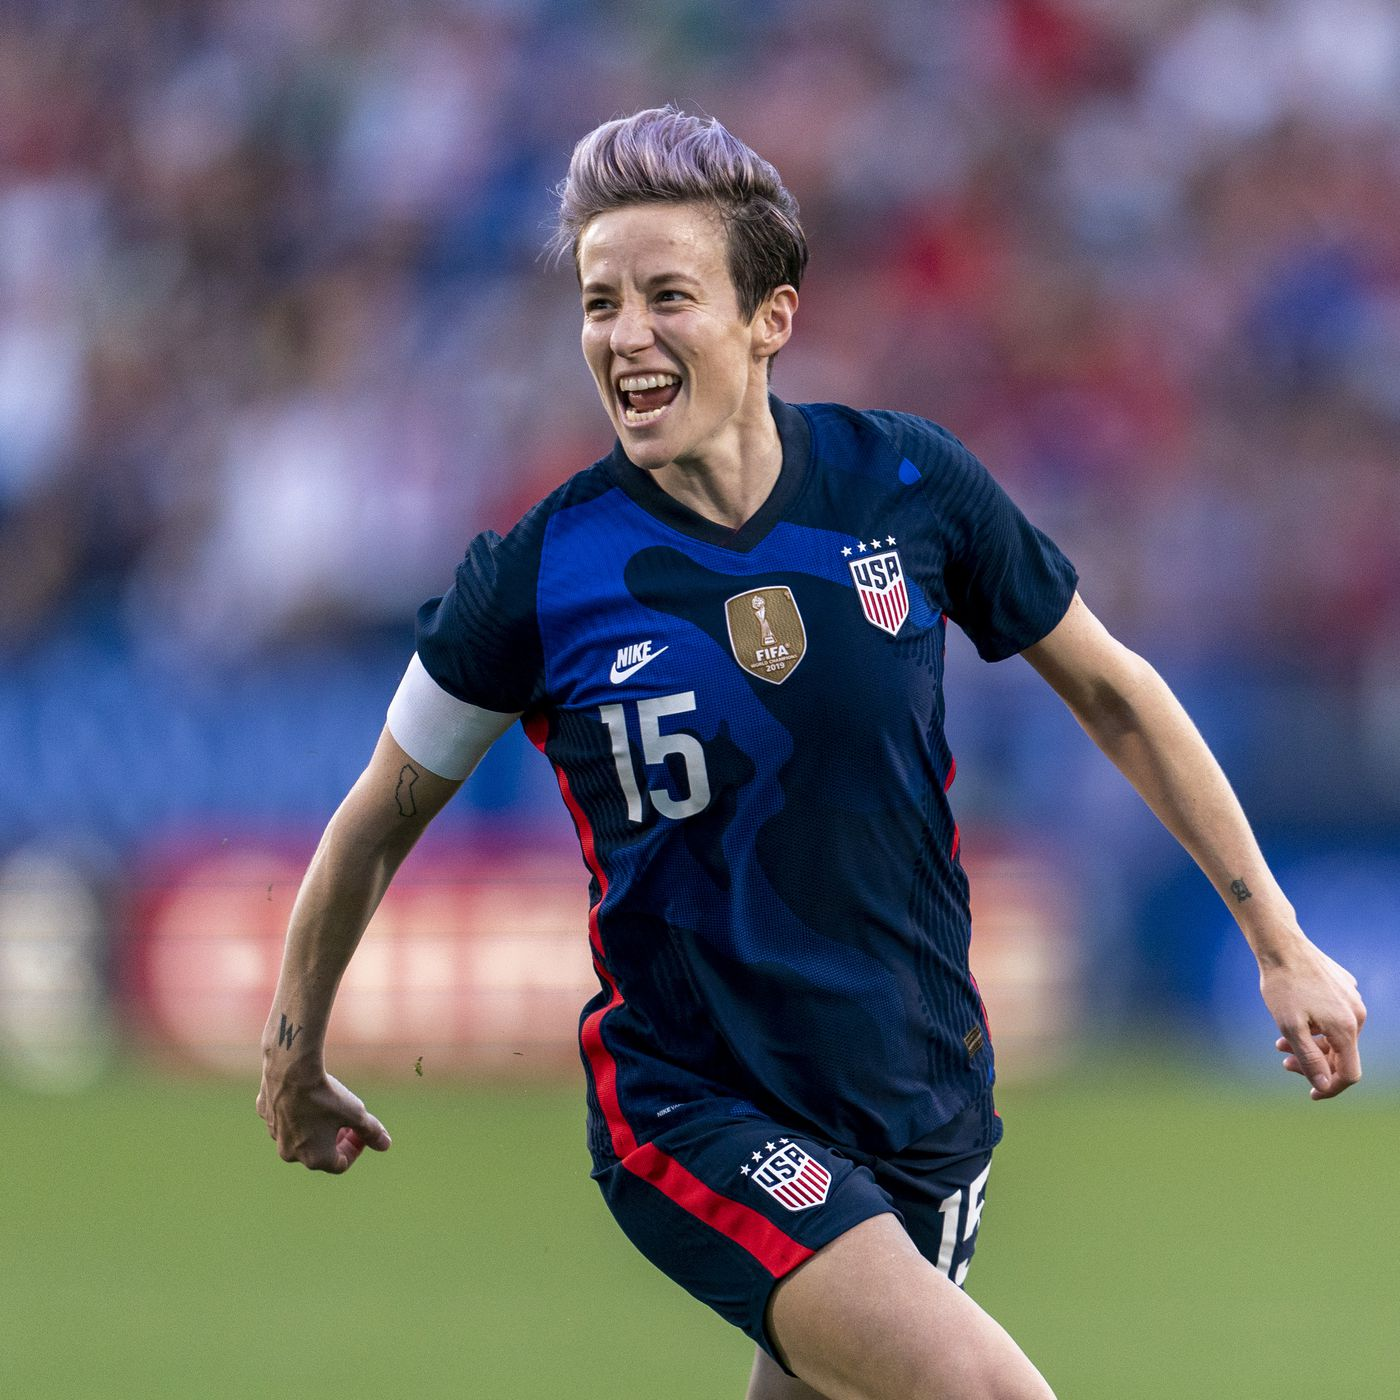 uswnt equal pay megan rapinoe explains why judge got ruling wrong outsports uswnt equal pay megan rapinoe explains